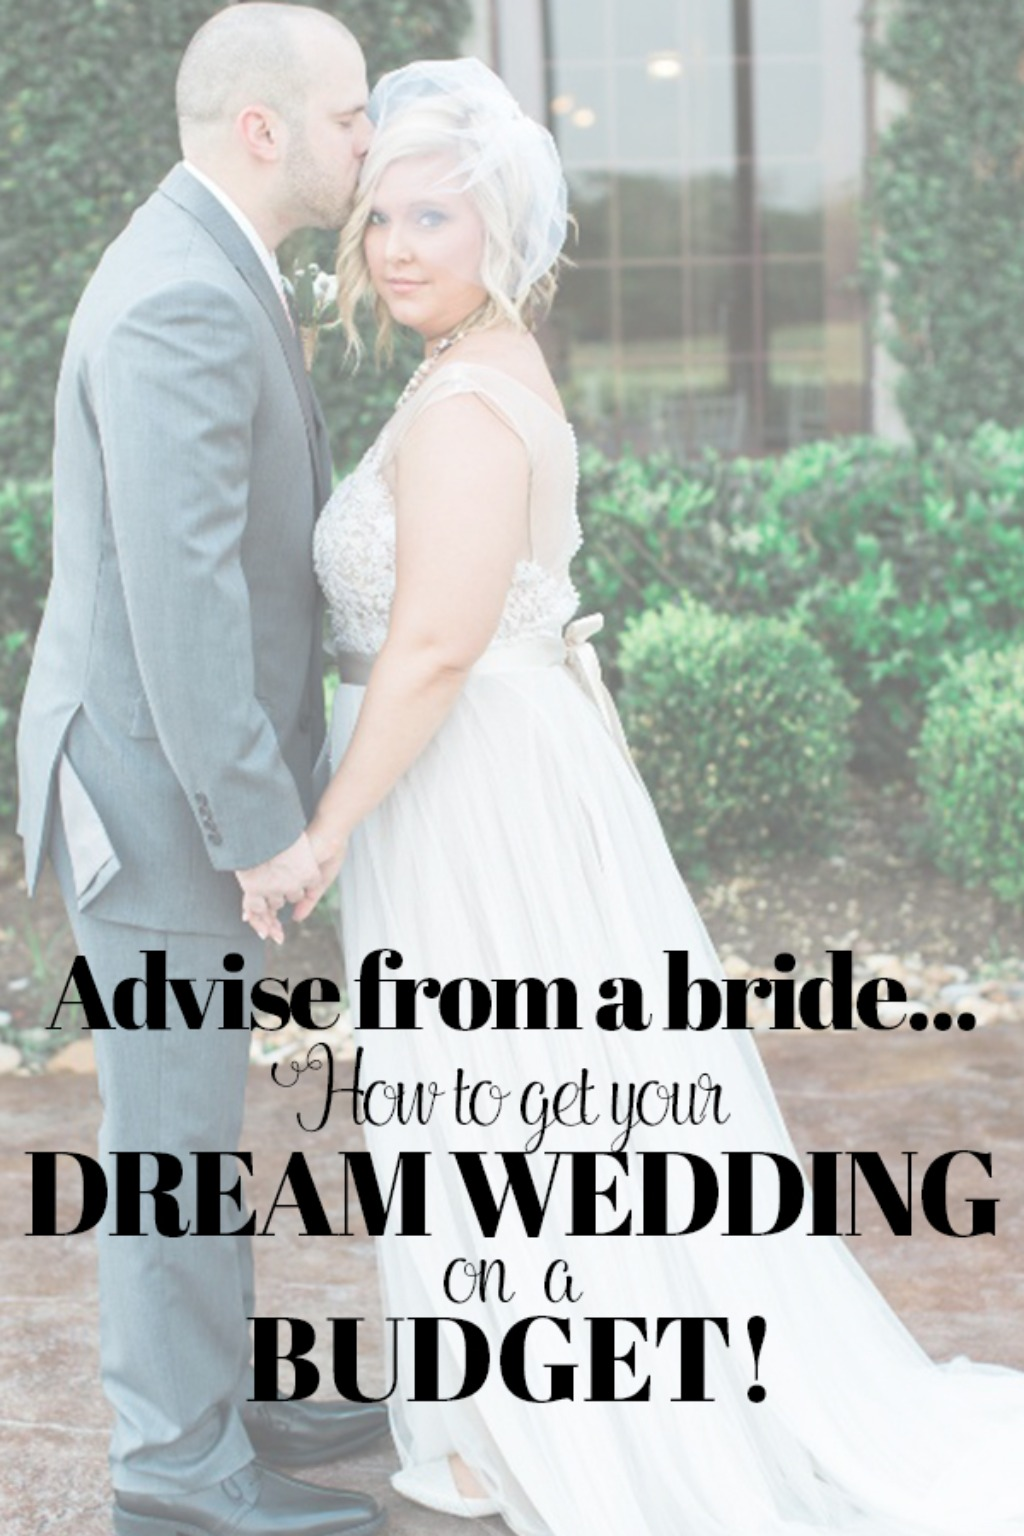 How to get the wedding of your dreams on a budget… it can be done! Take some advise from a bride…